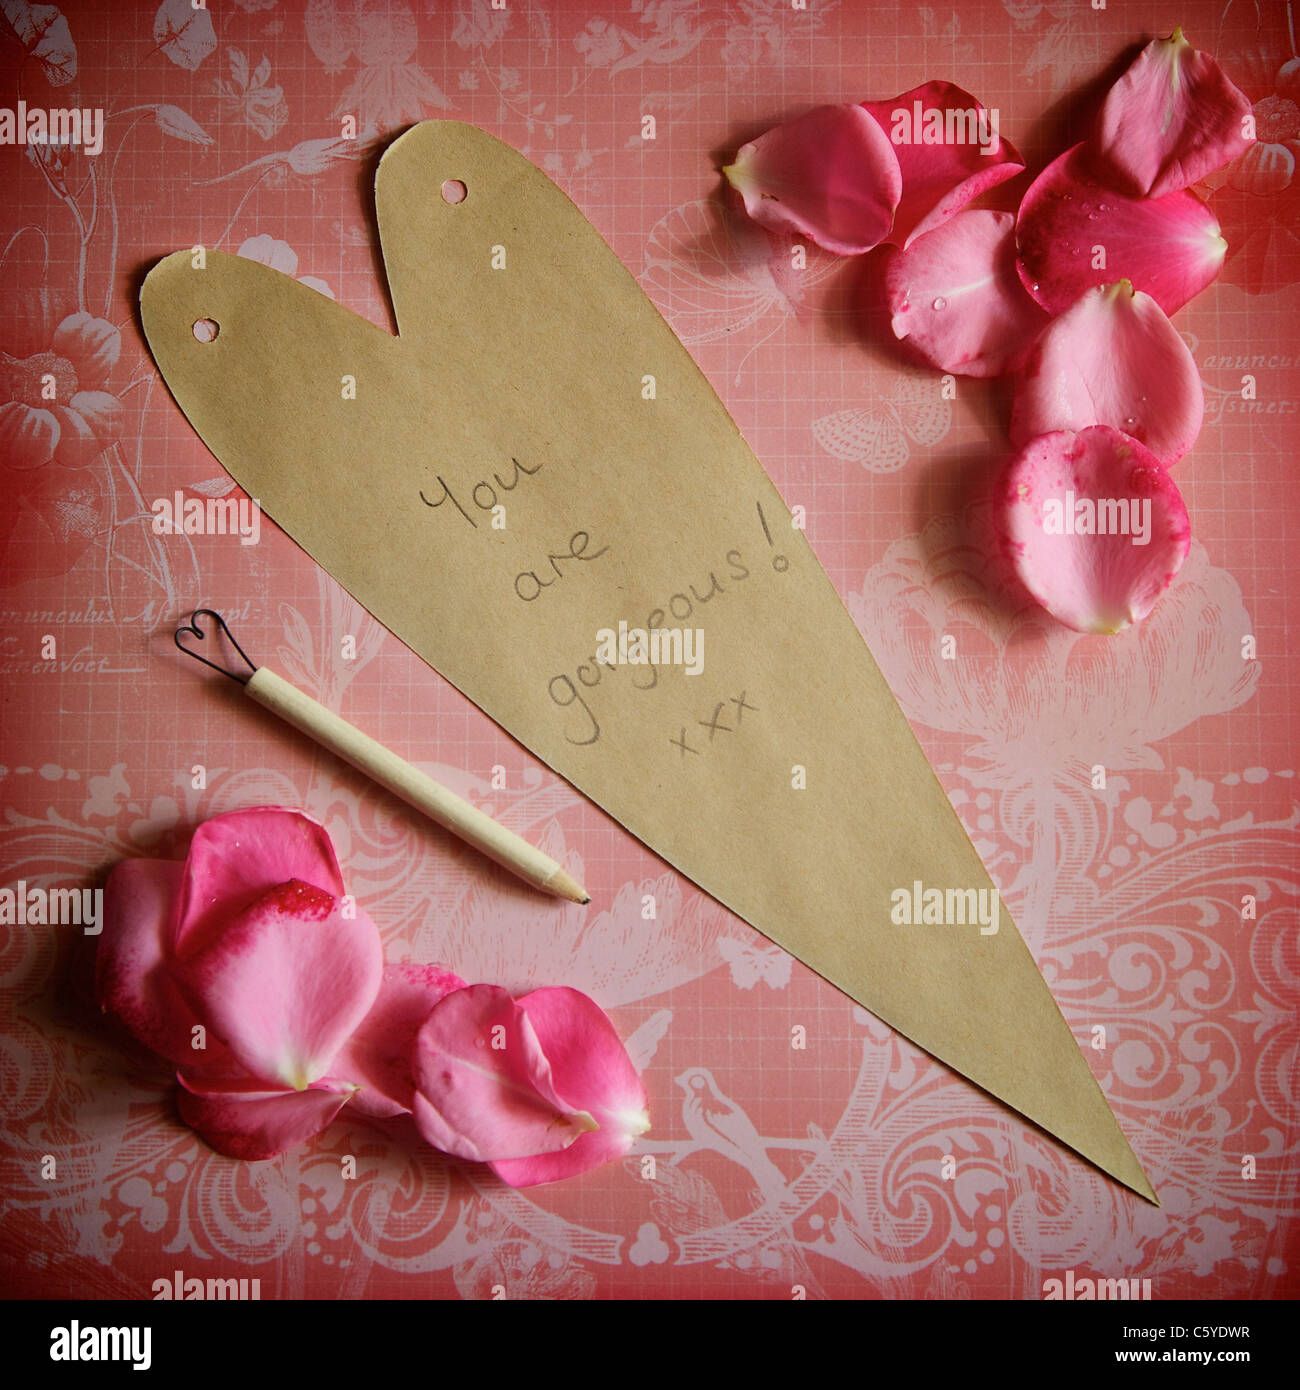 Love letter 'You are Gorgeous'! - Stock Image